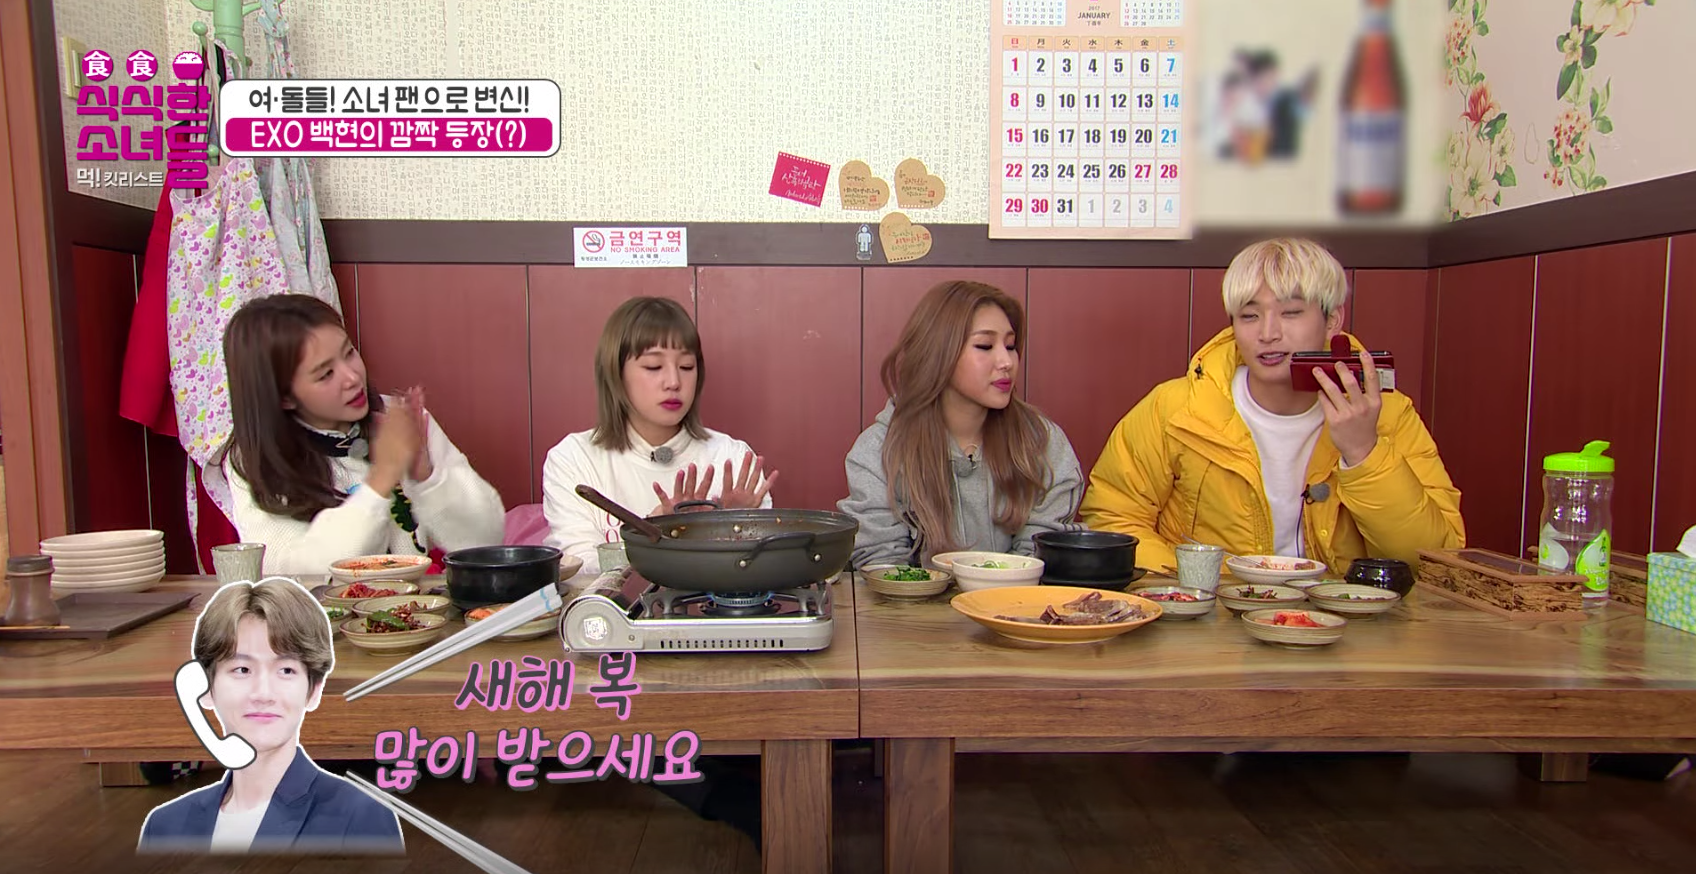 Watch: Restaurant Owned By Baekhyun's Aunt And Uncle Gets Featured In New Food Variety Show